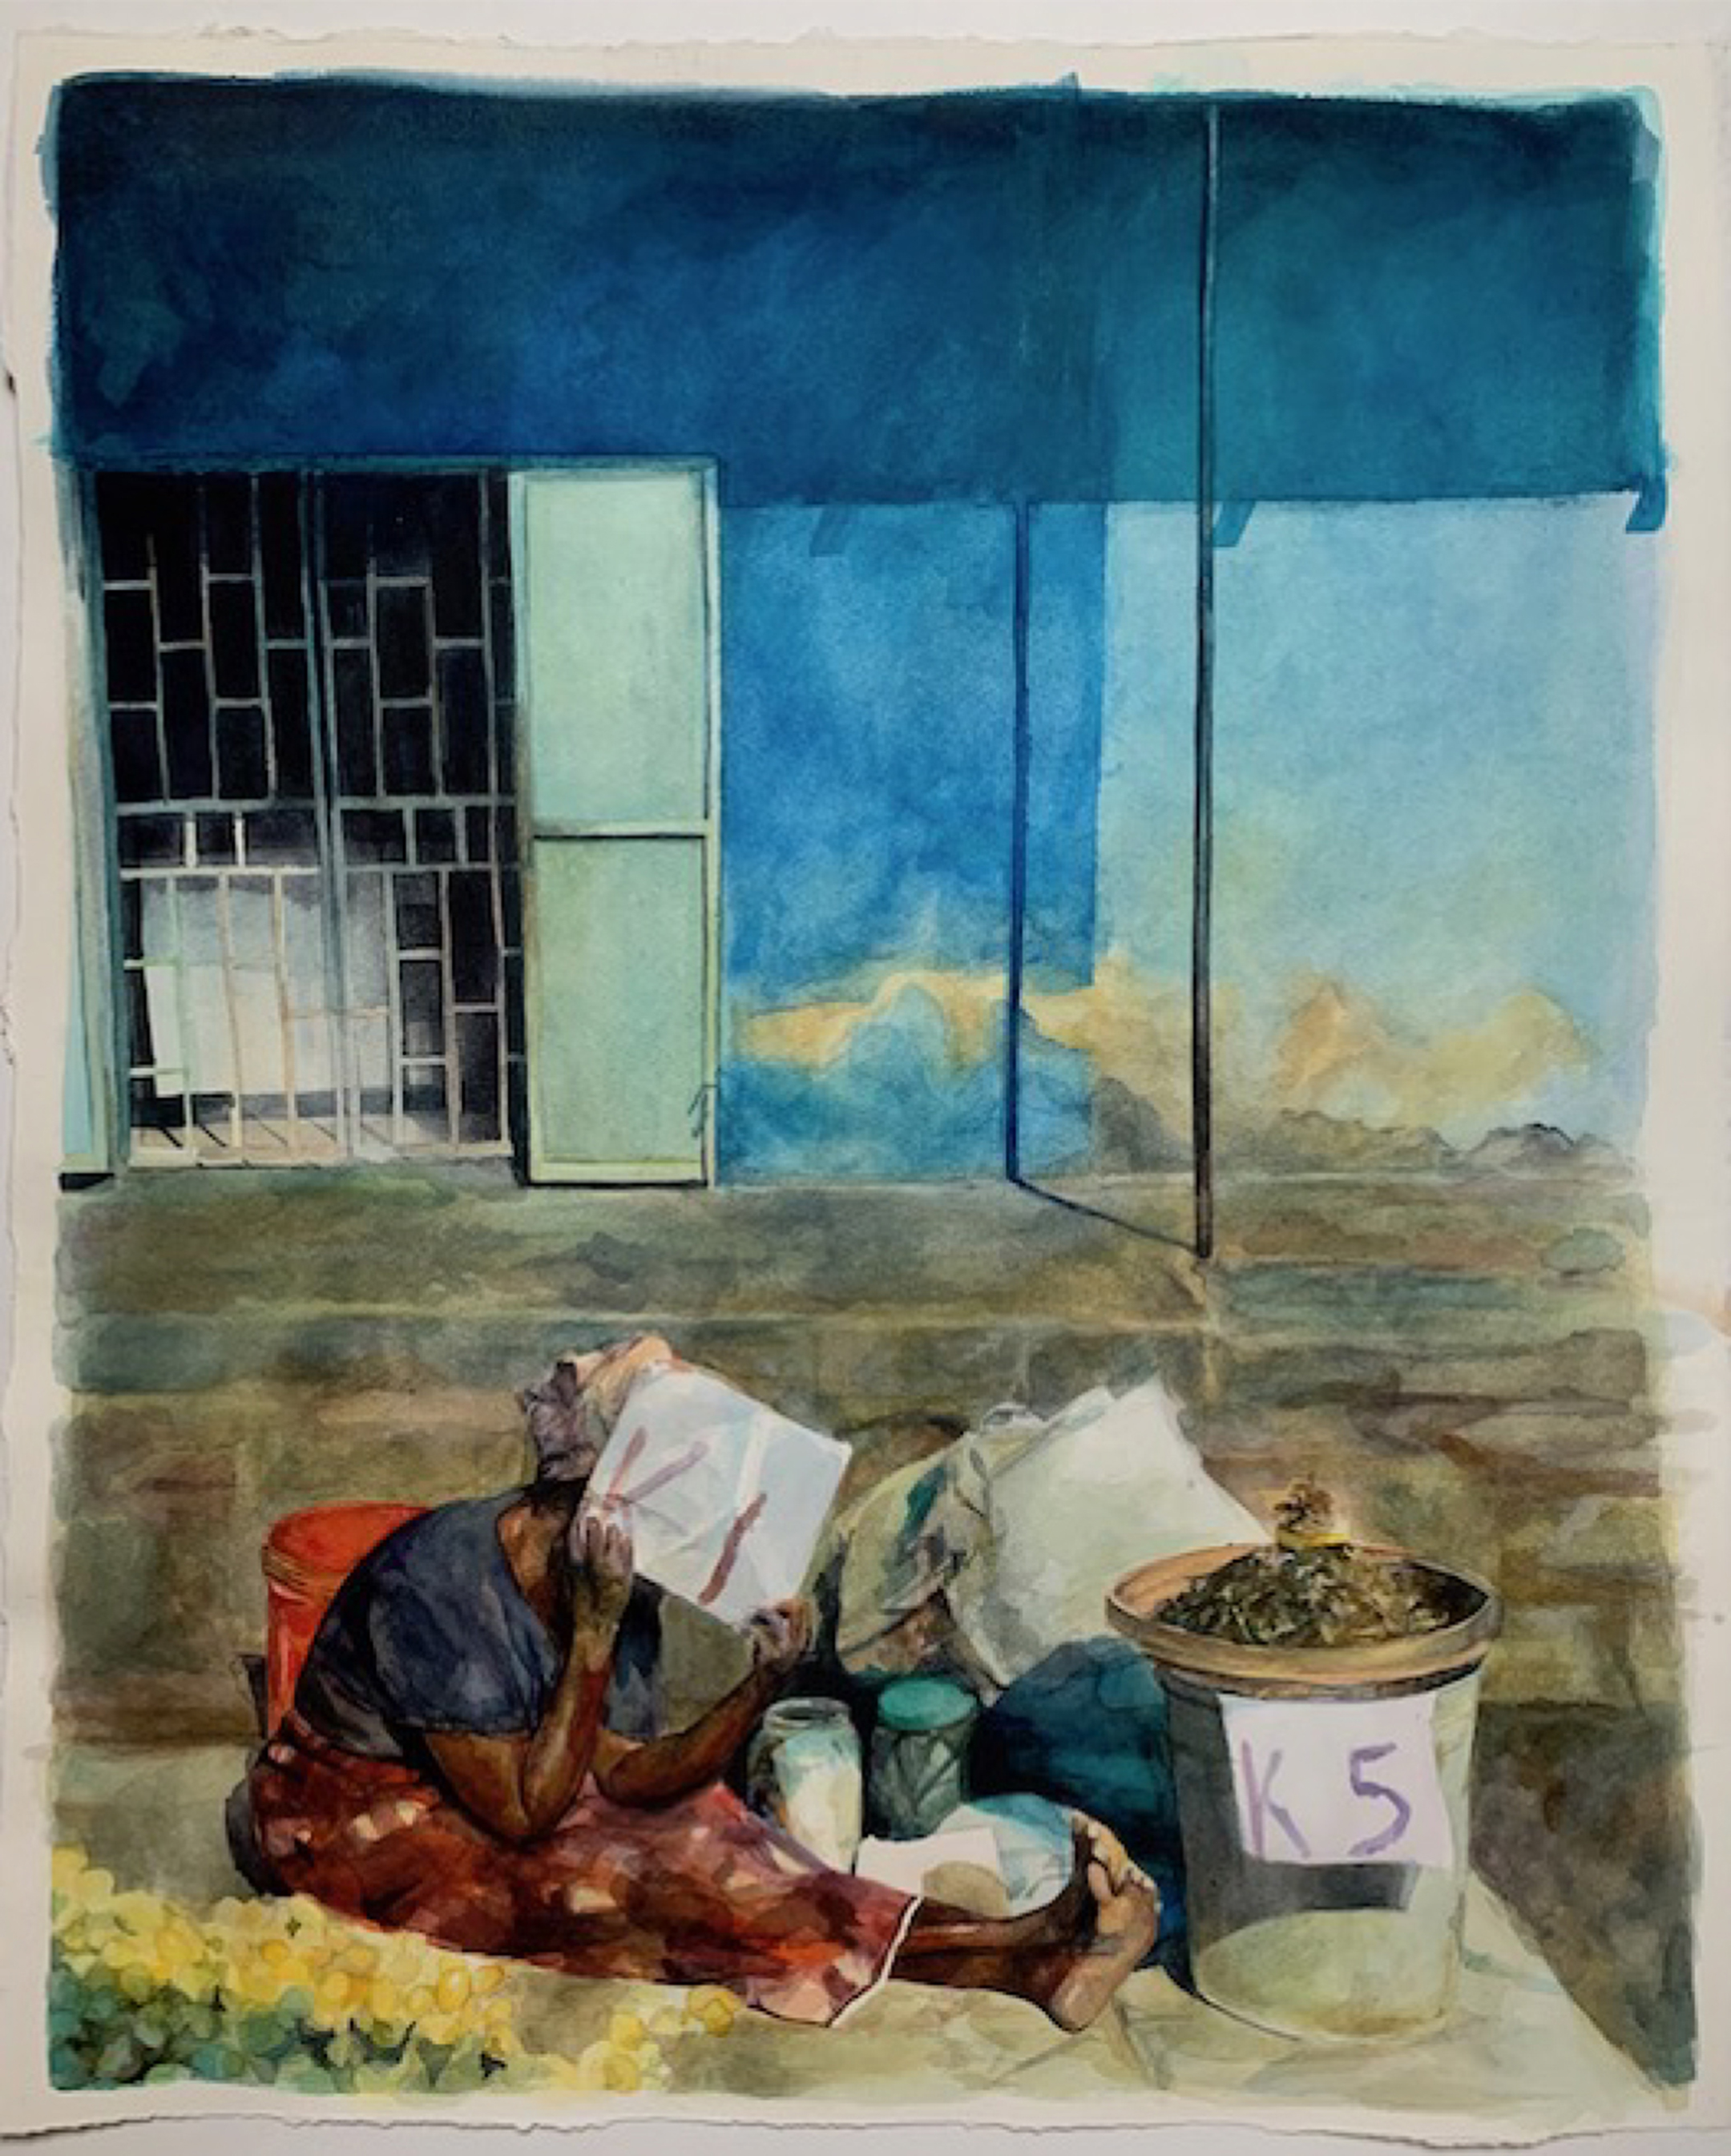 Illustration of a woman sitting on the ground, with a bundle of belongings, shielding her face, in front of a building